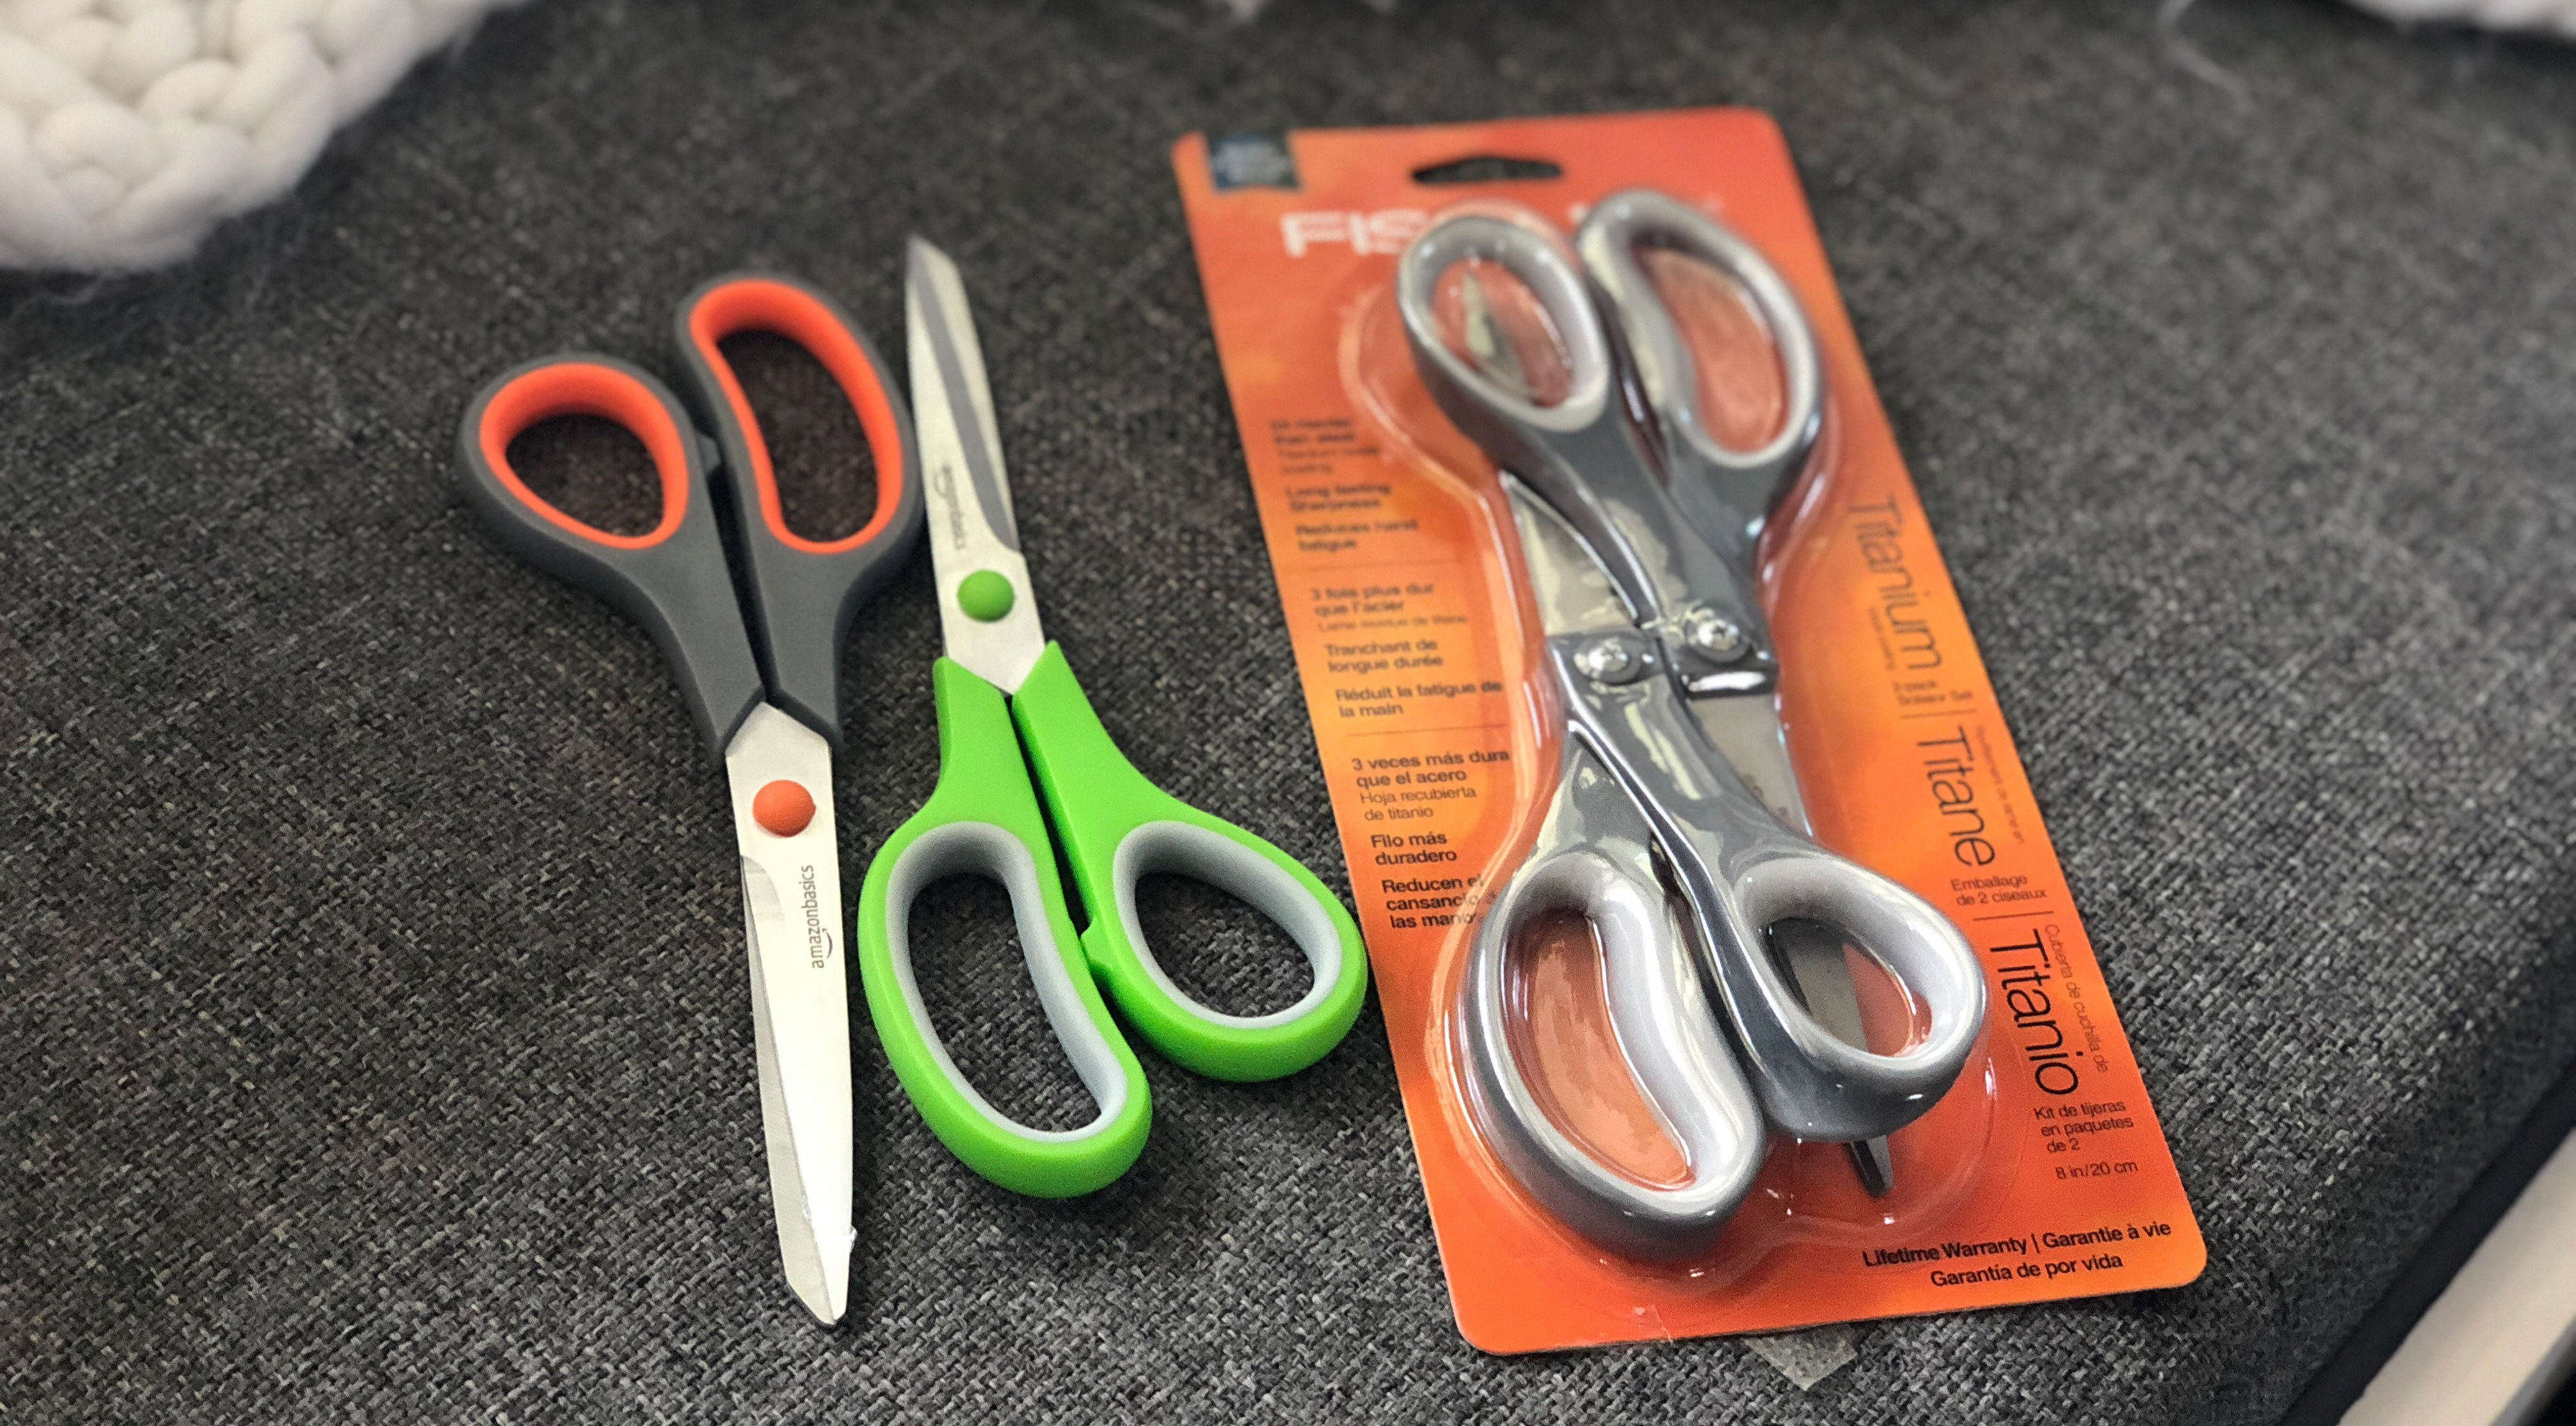 A cost comparison of the Amazon brand cost includes a scissors test.